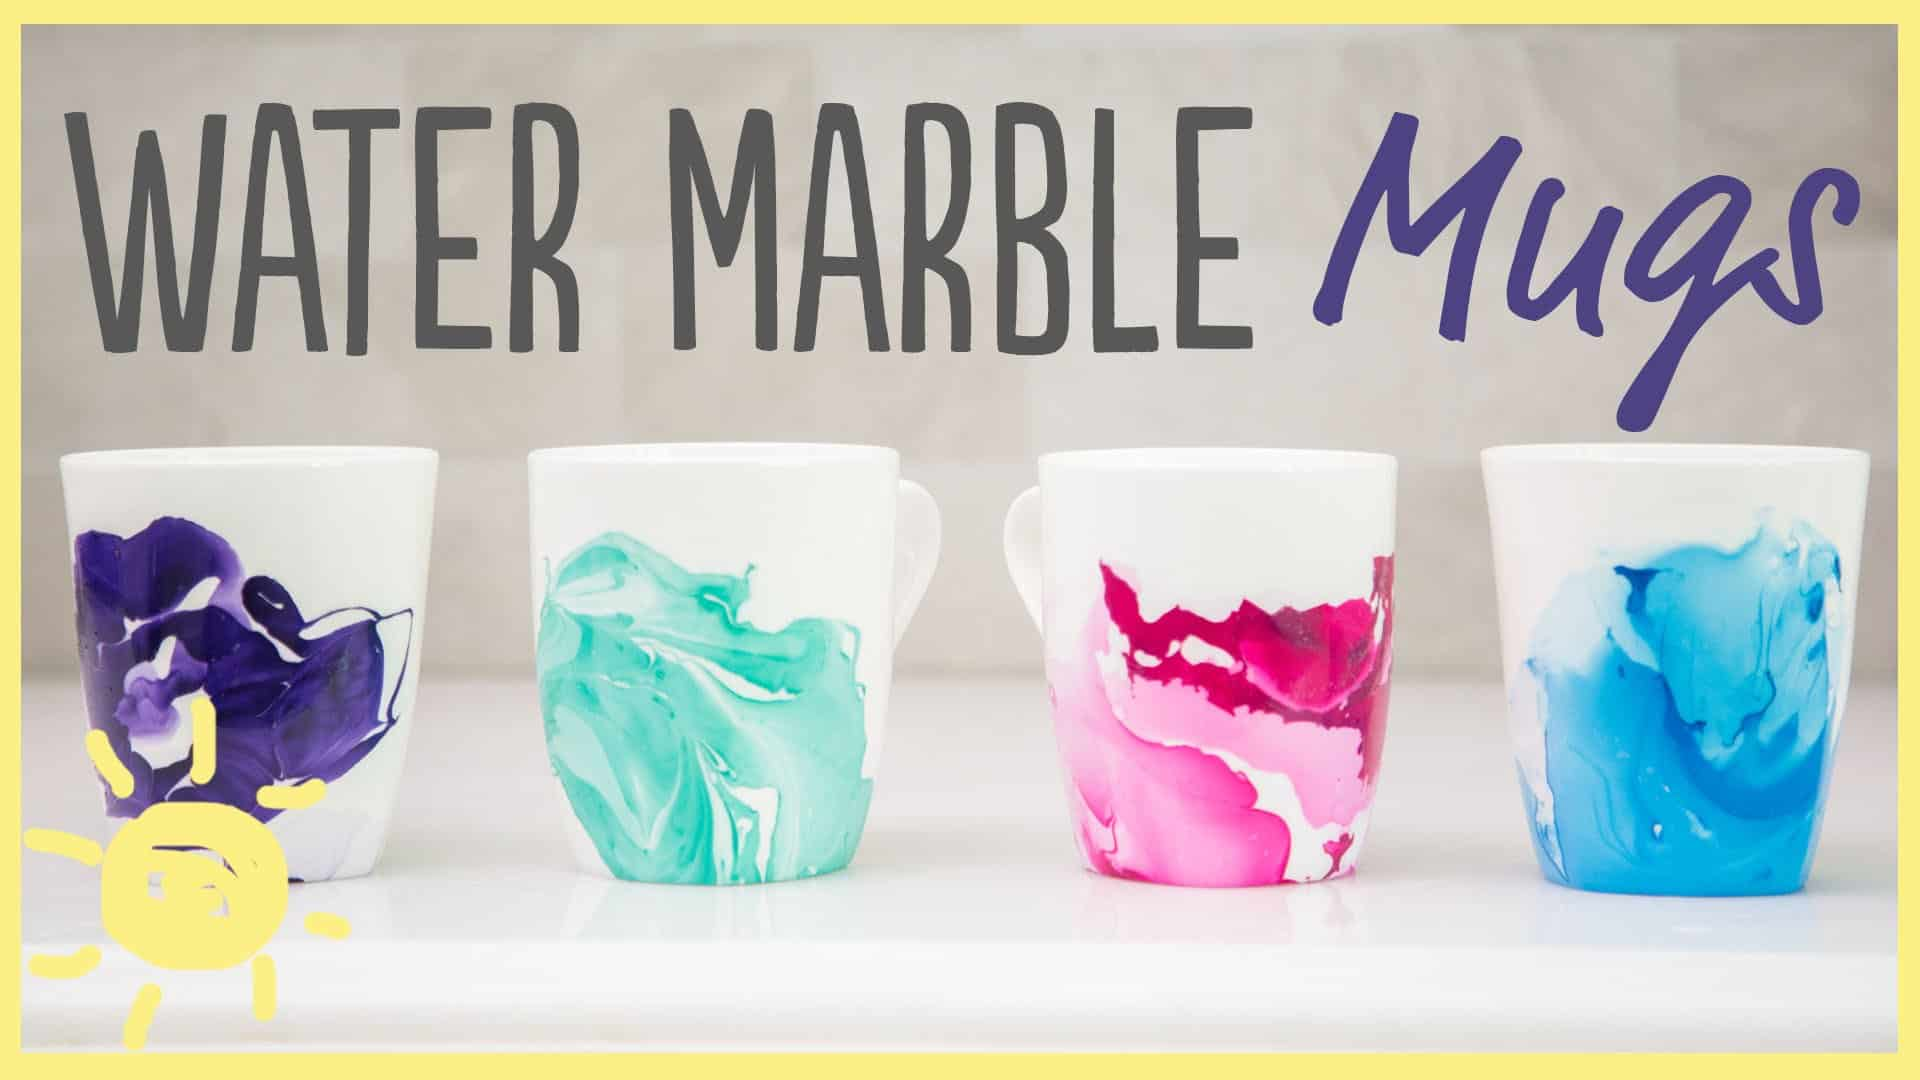 Make These Funky Diy Water Marble Mugs Using Just Two Ingredients Awesomejelly Com